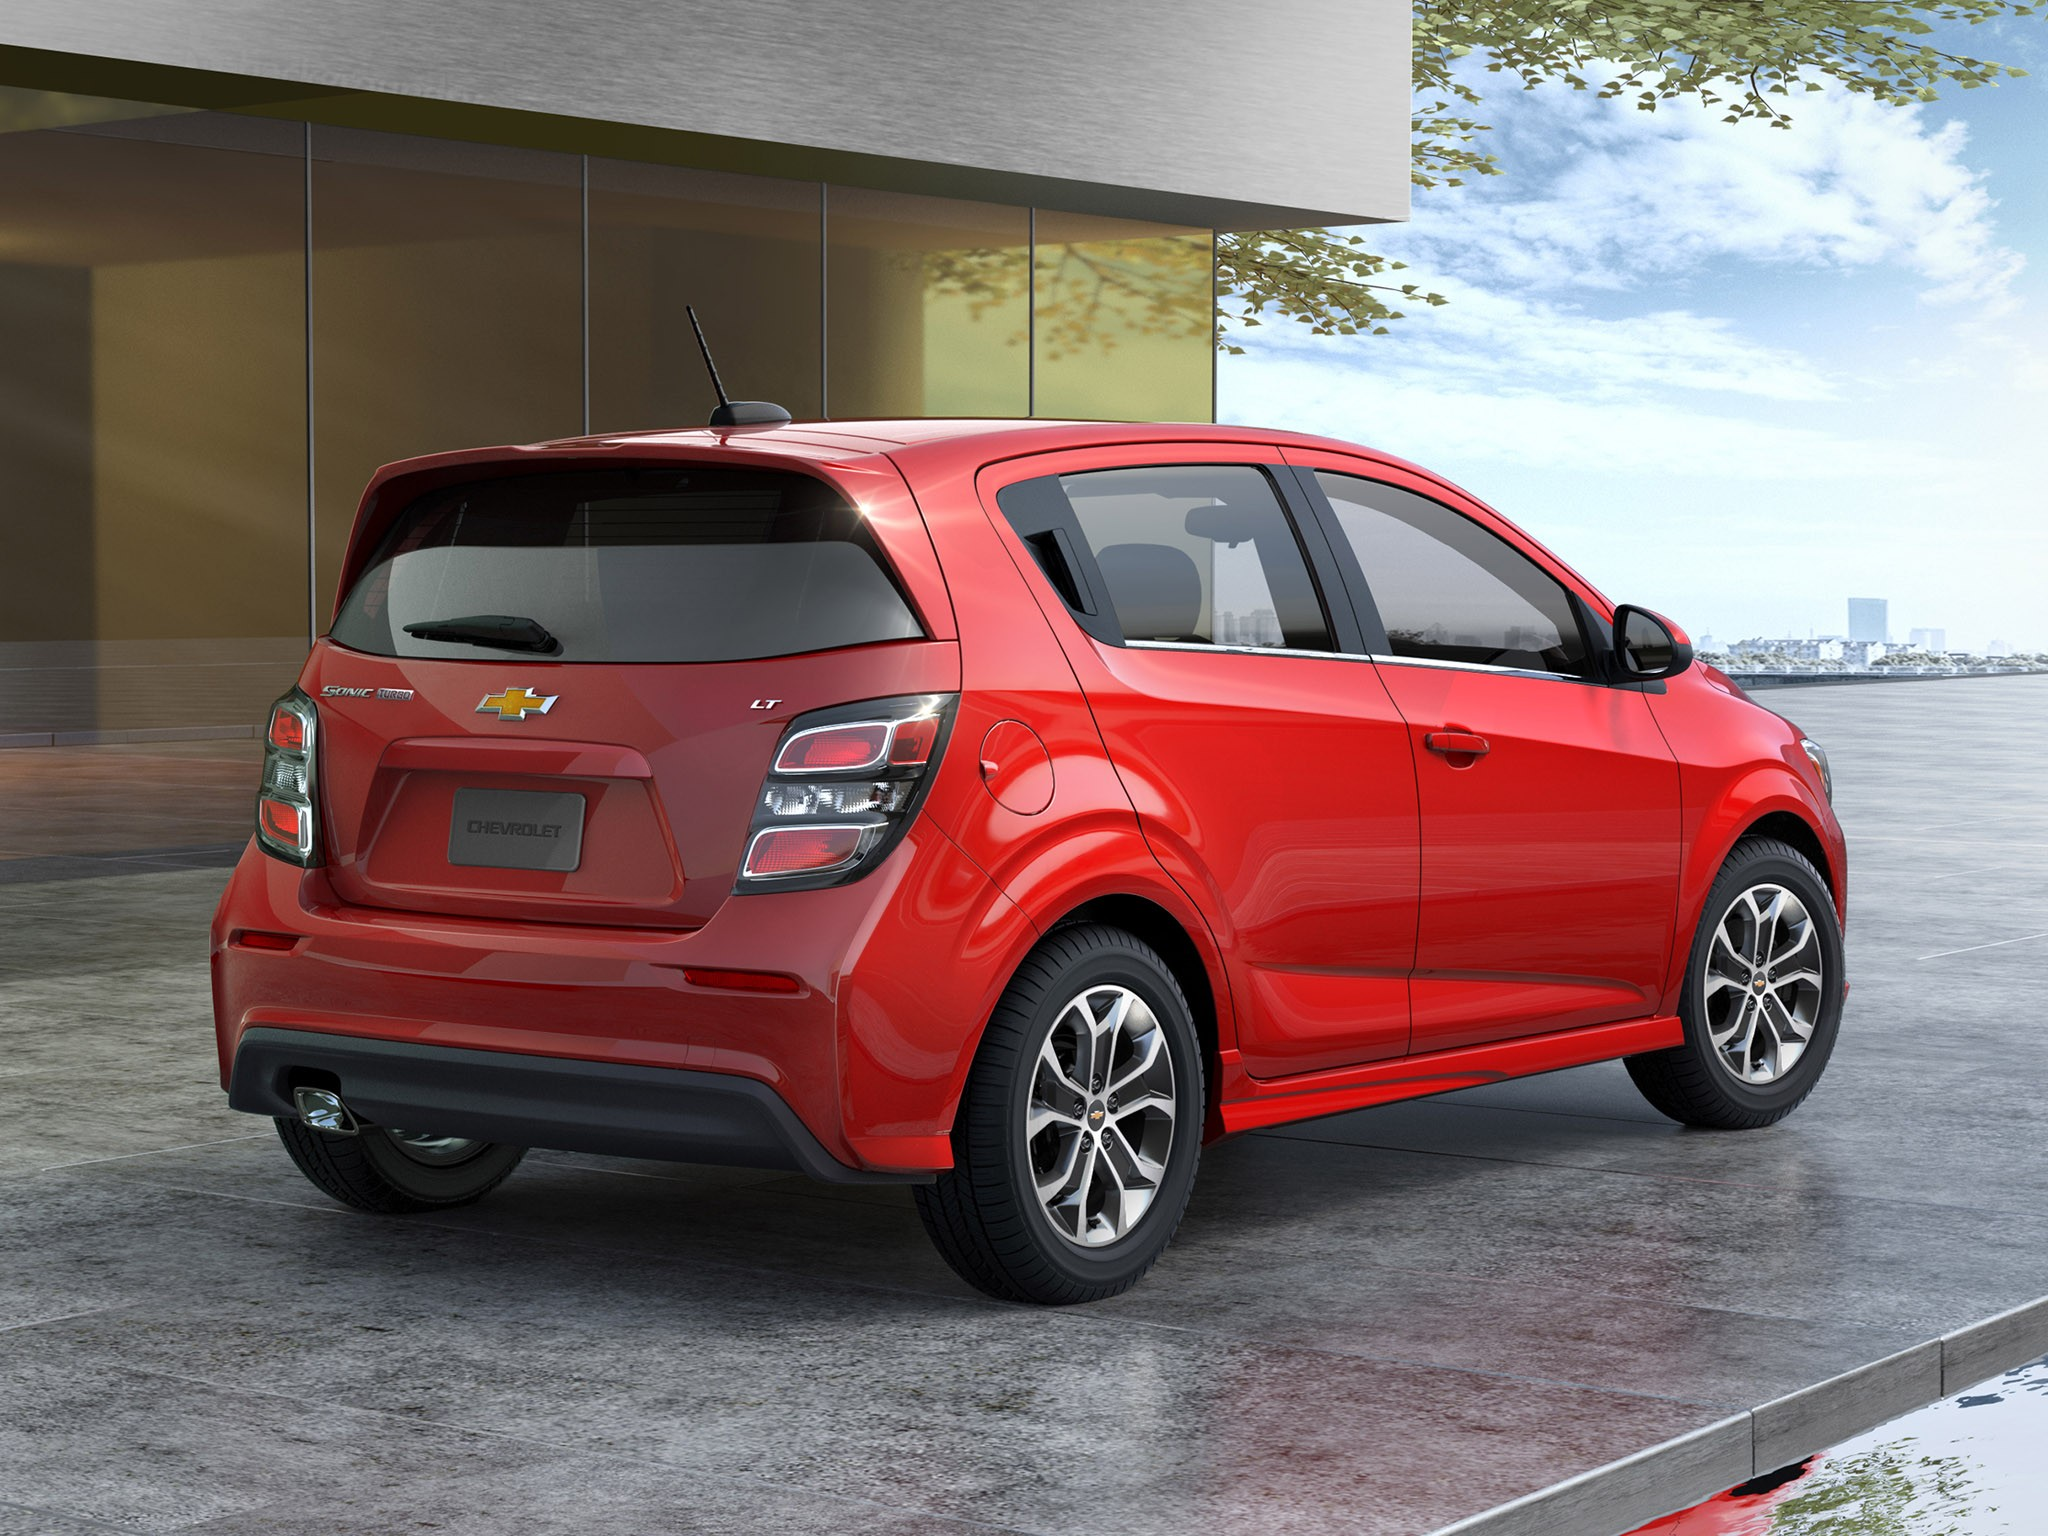 2016 Chevrolet Sonic Hatchback USA